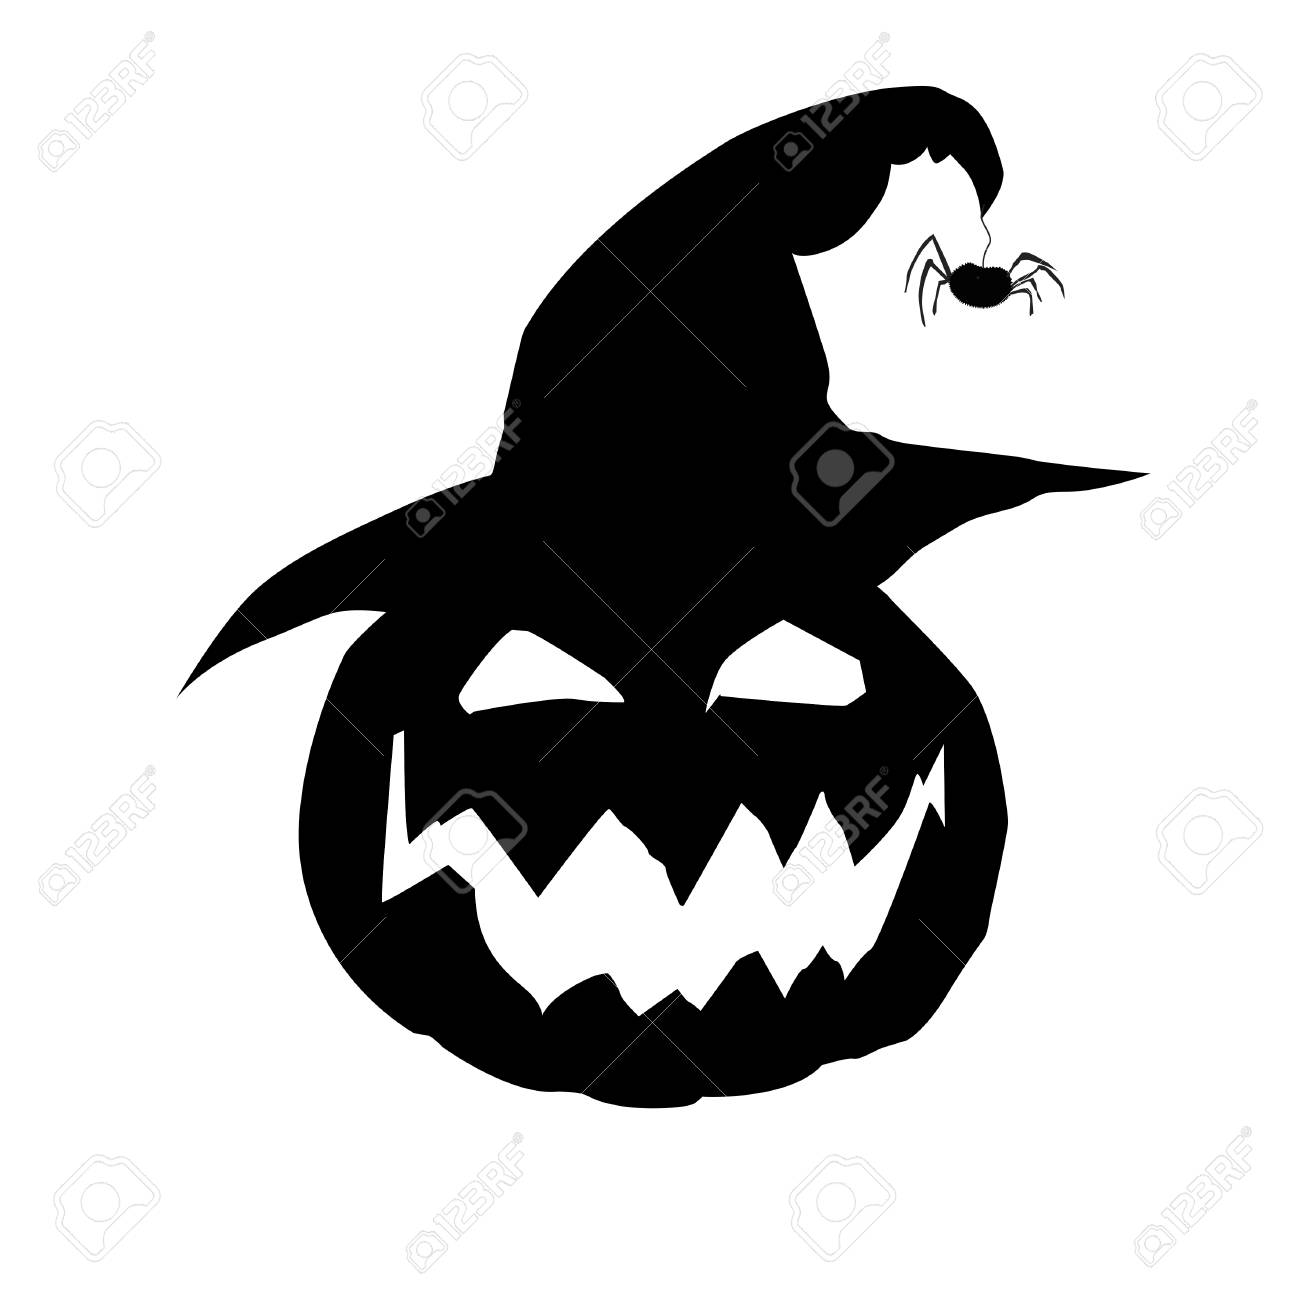 Halloween Vector Illustration Of Scary Pumpkin Jack Face In Witch Royalty Free Cliparts Vectors And Stock Illustration Image 87761951